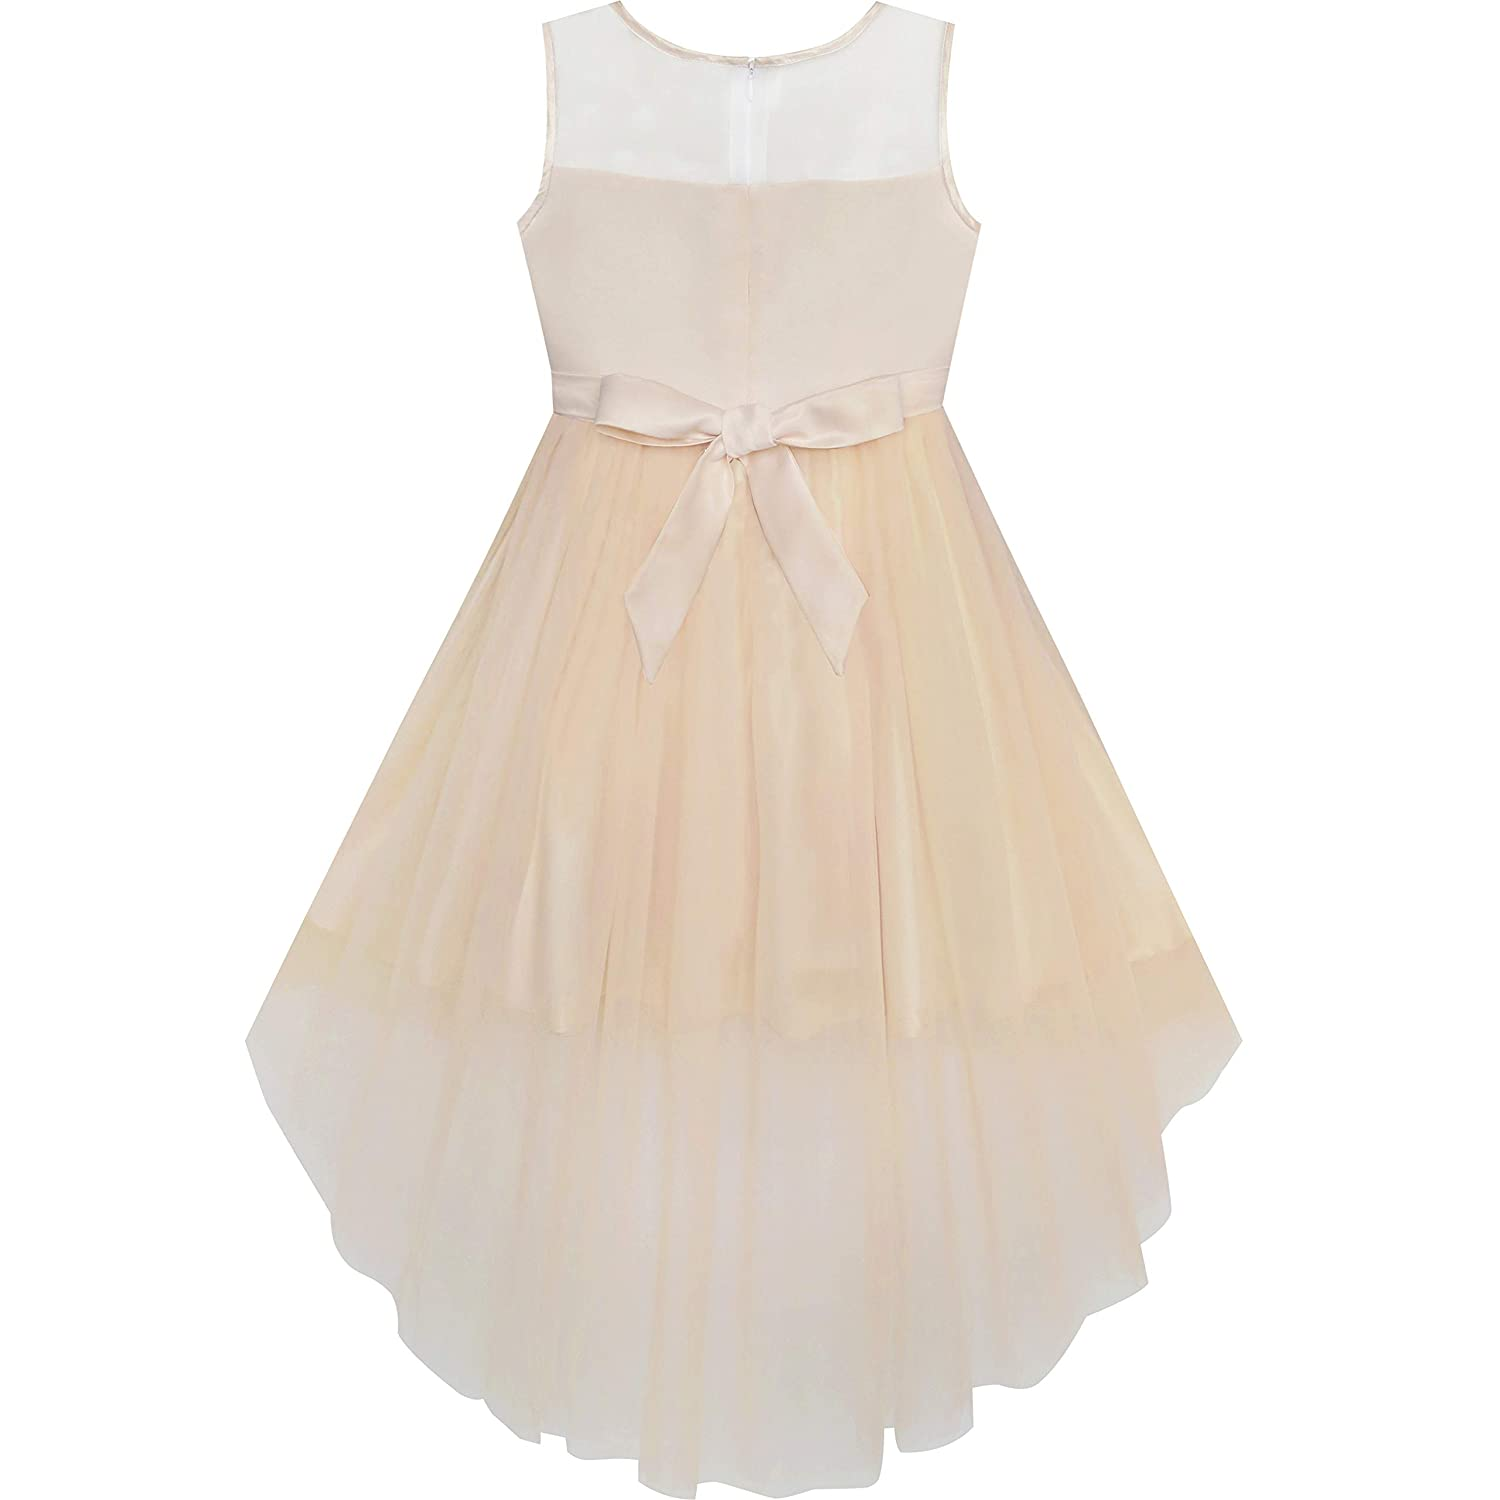 Sunny Fashion Girls Dress Sequin Mesh Party Wedding Princess Tulle Vestito Bambina